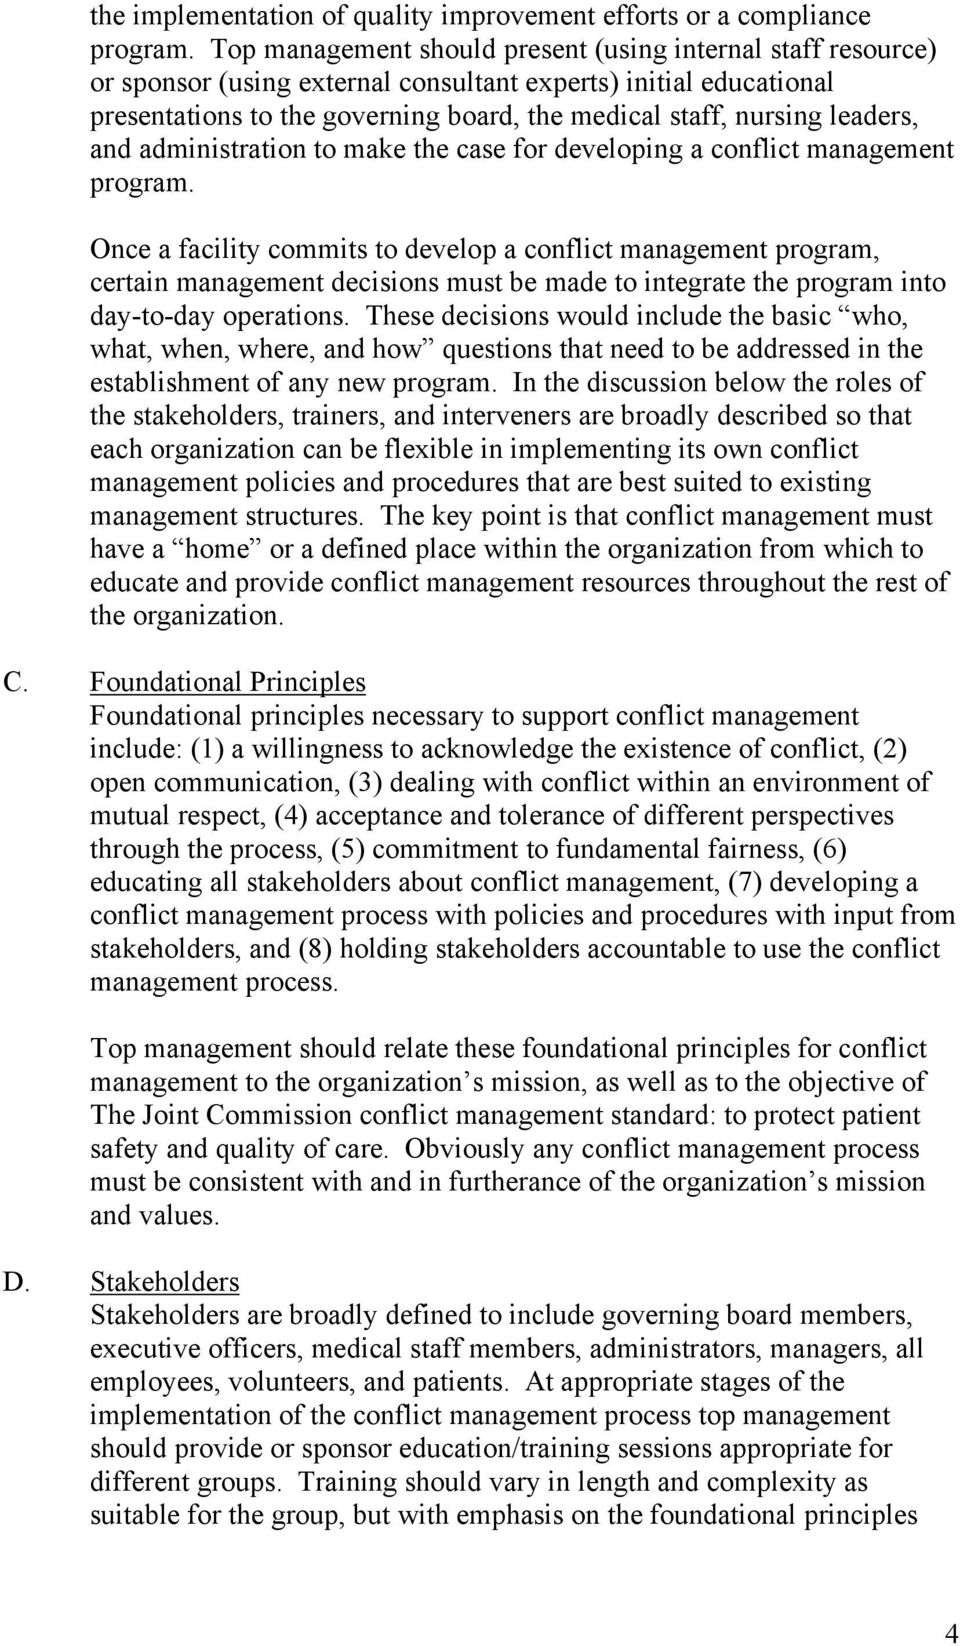 leaders, and administration to make the case for developing a conflict management program.